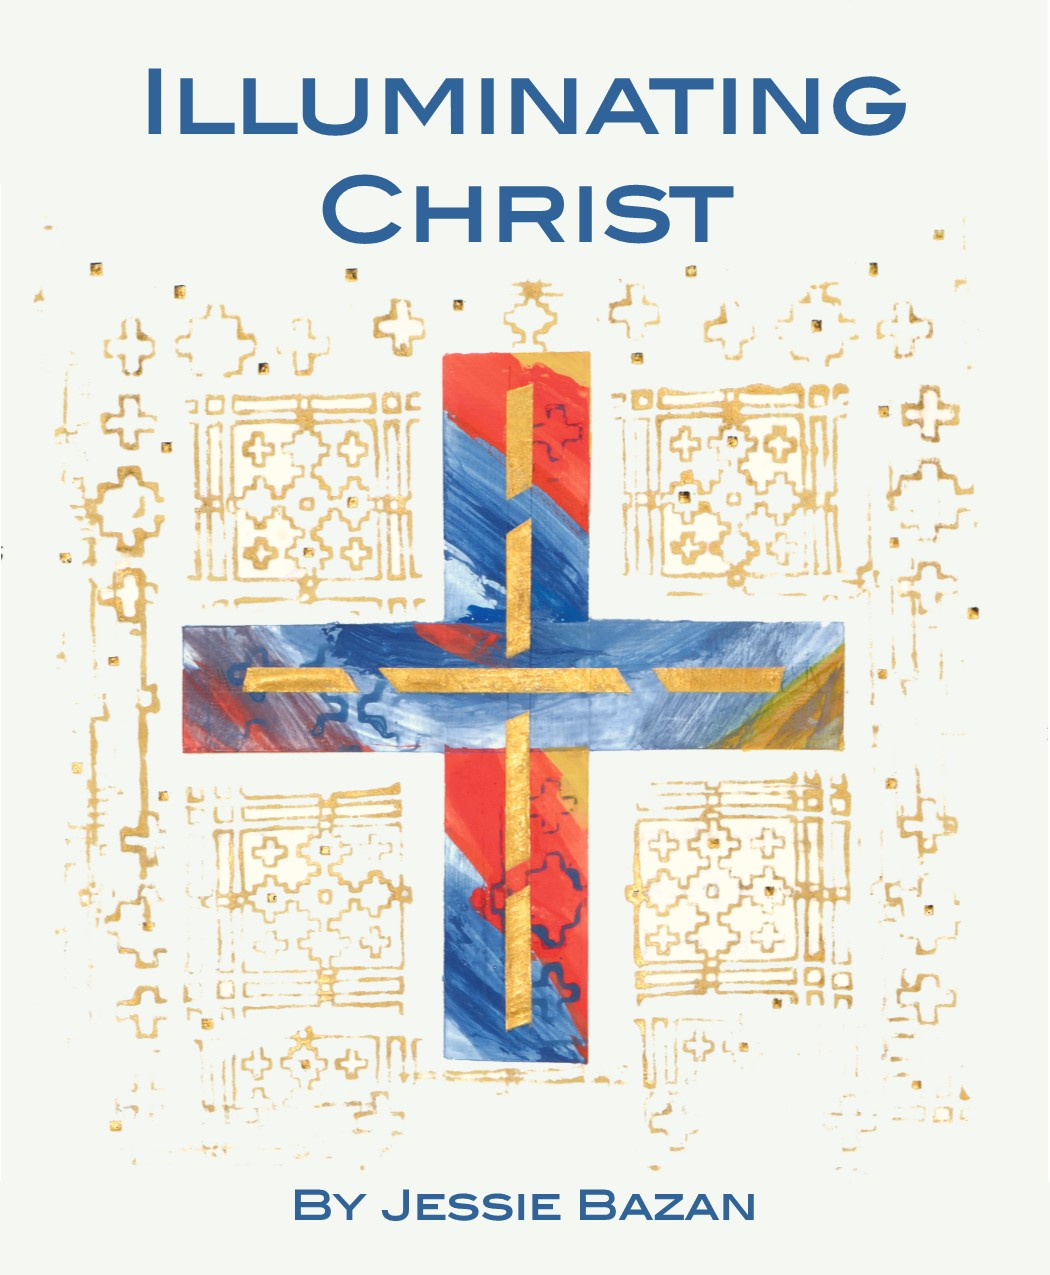 Illuminating Christ COVER